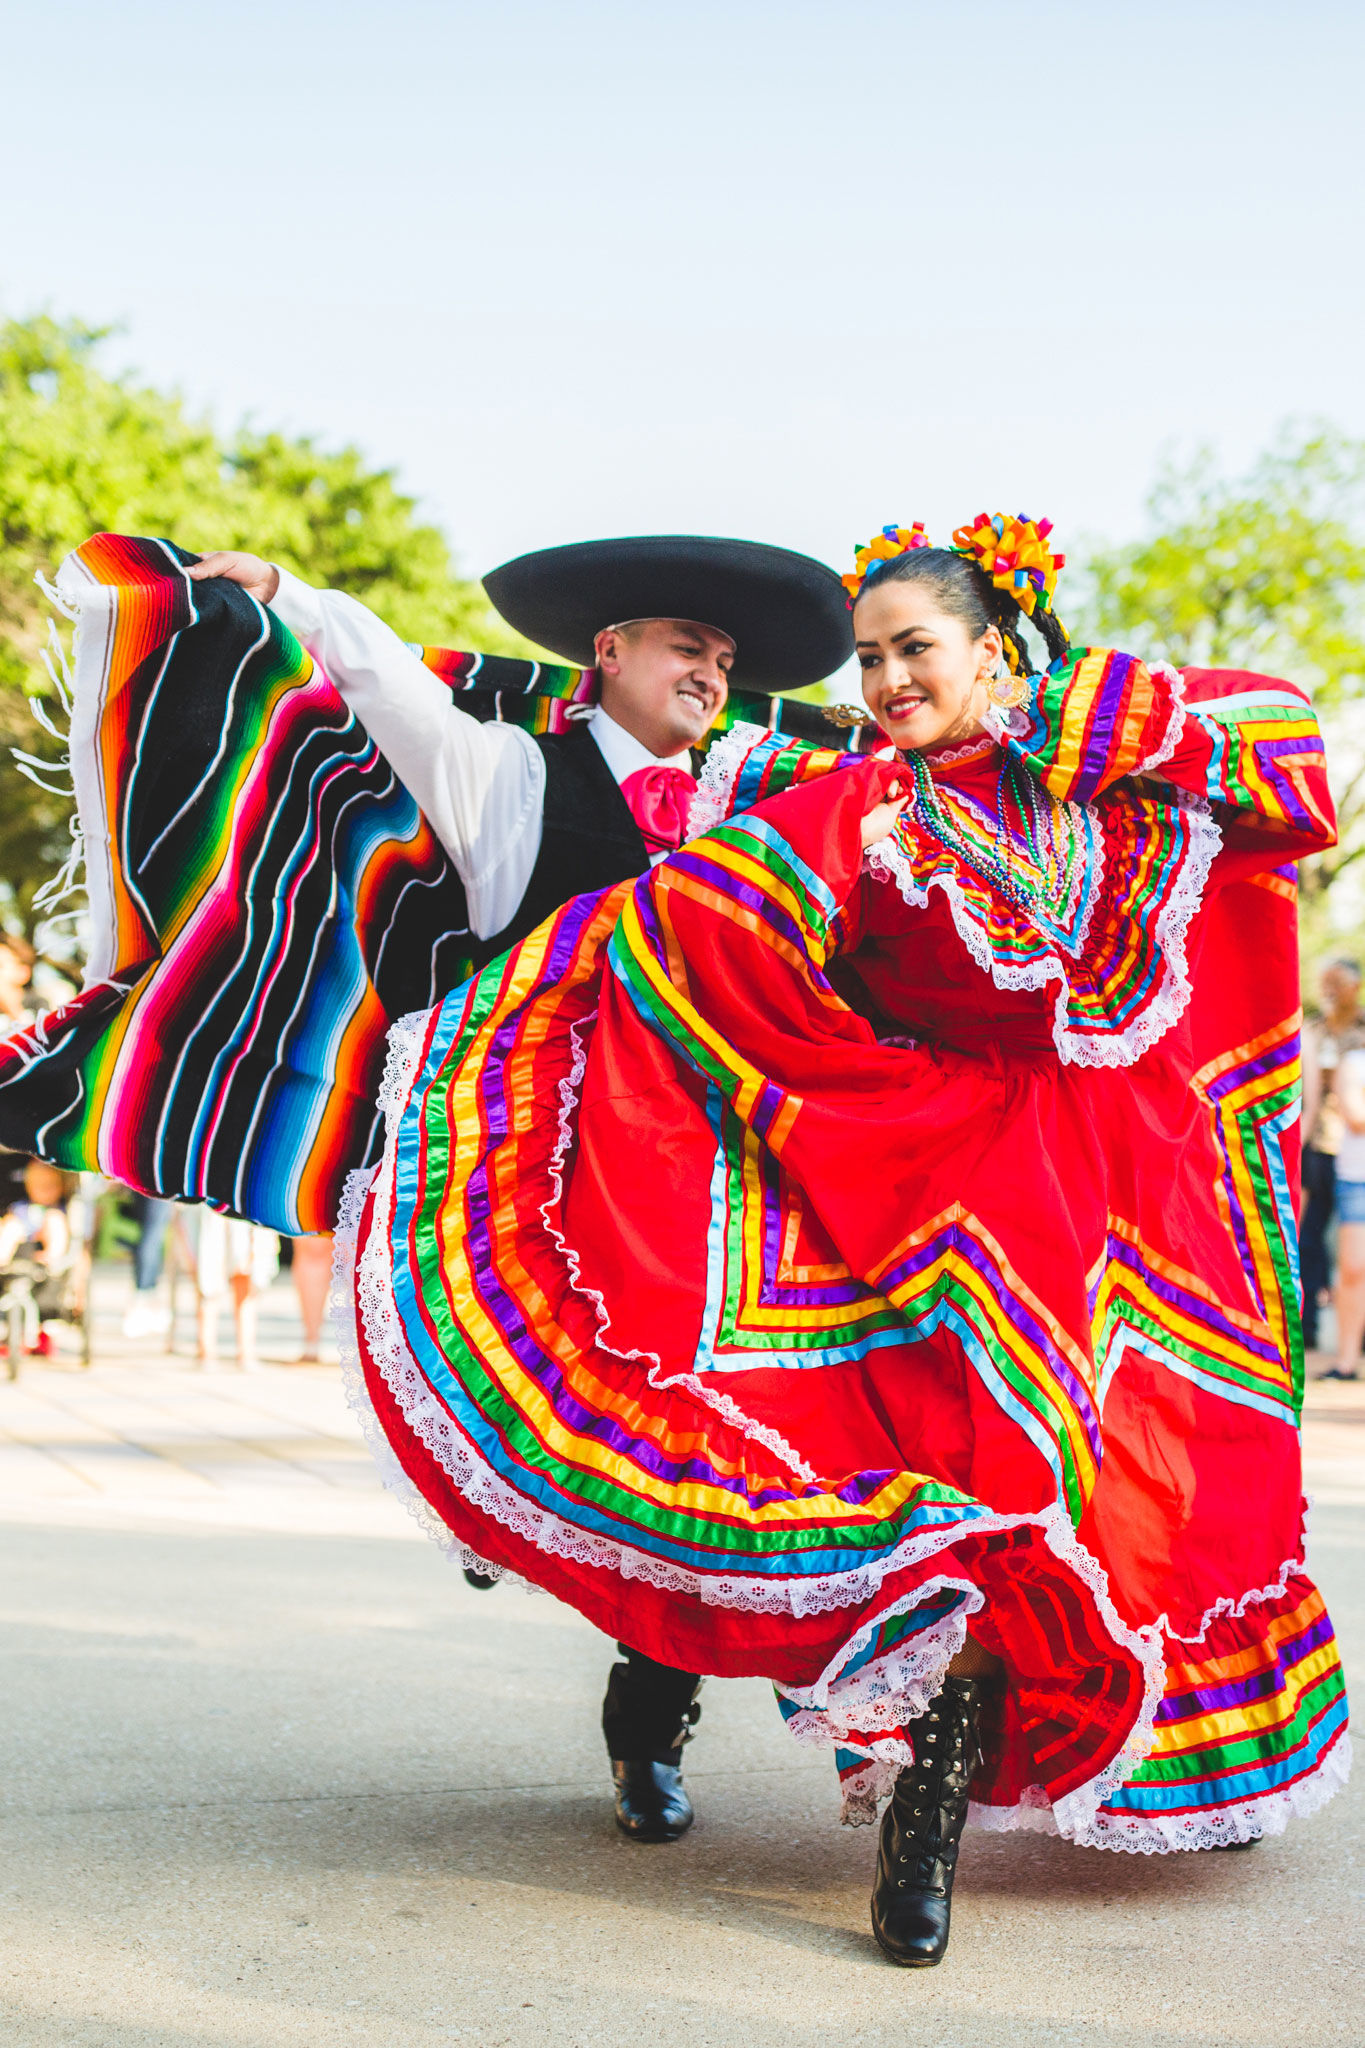 This Texas Town Is Celebrating 300 Years With A City-Wide Fiesta